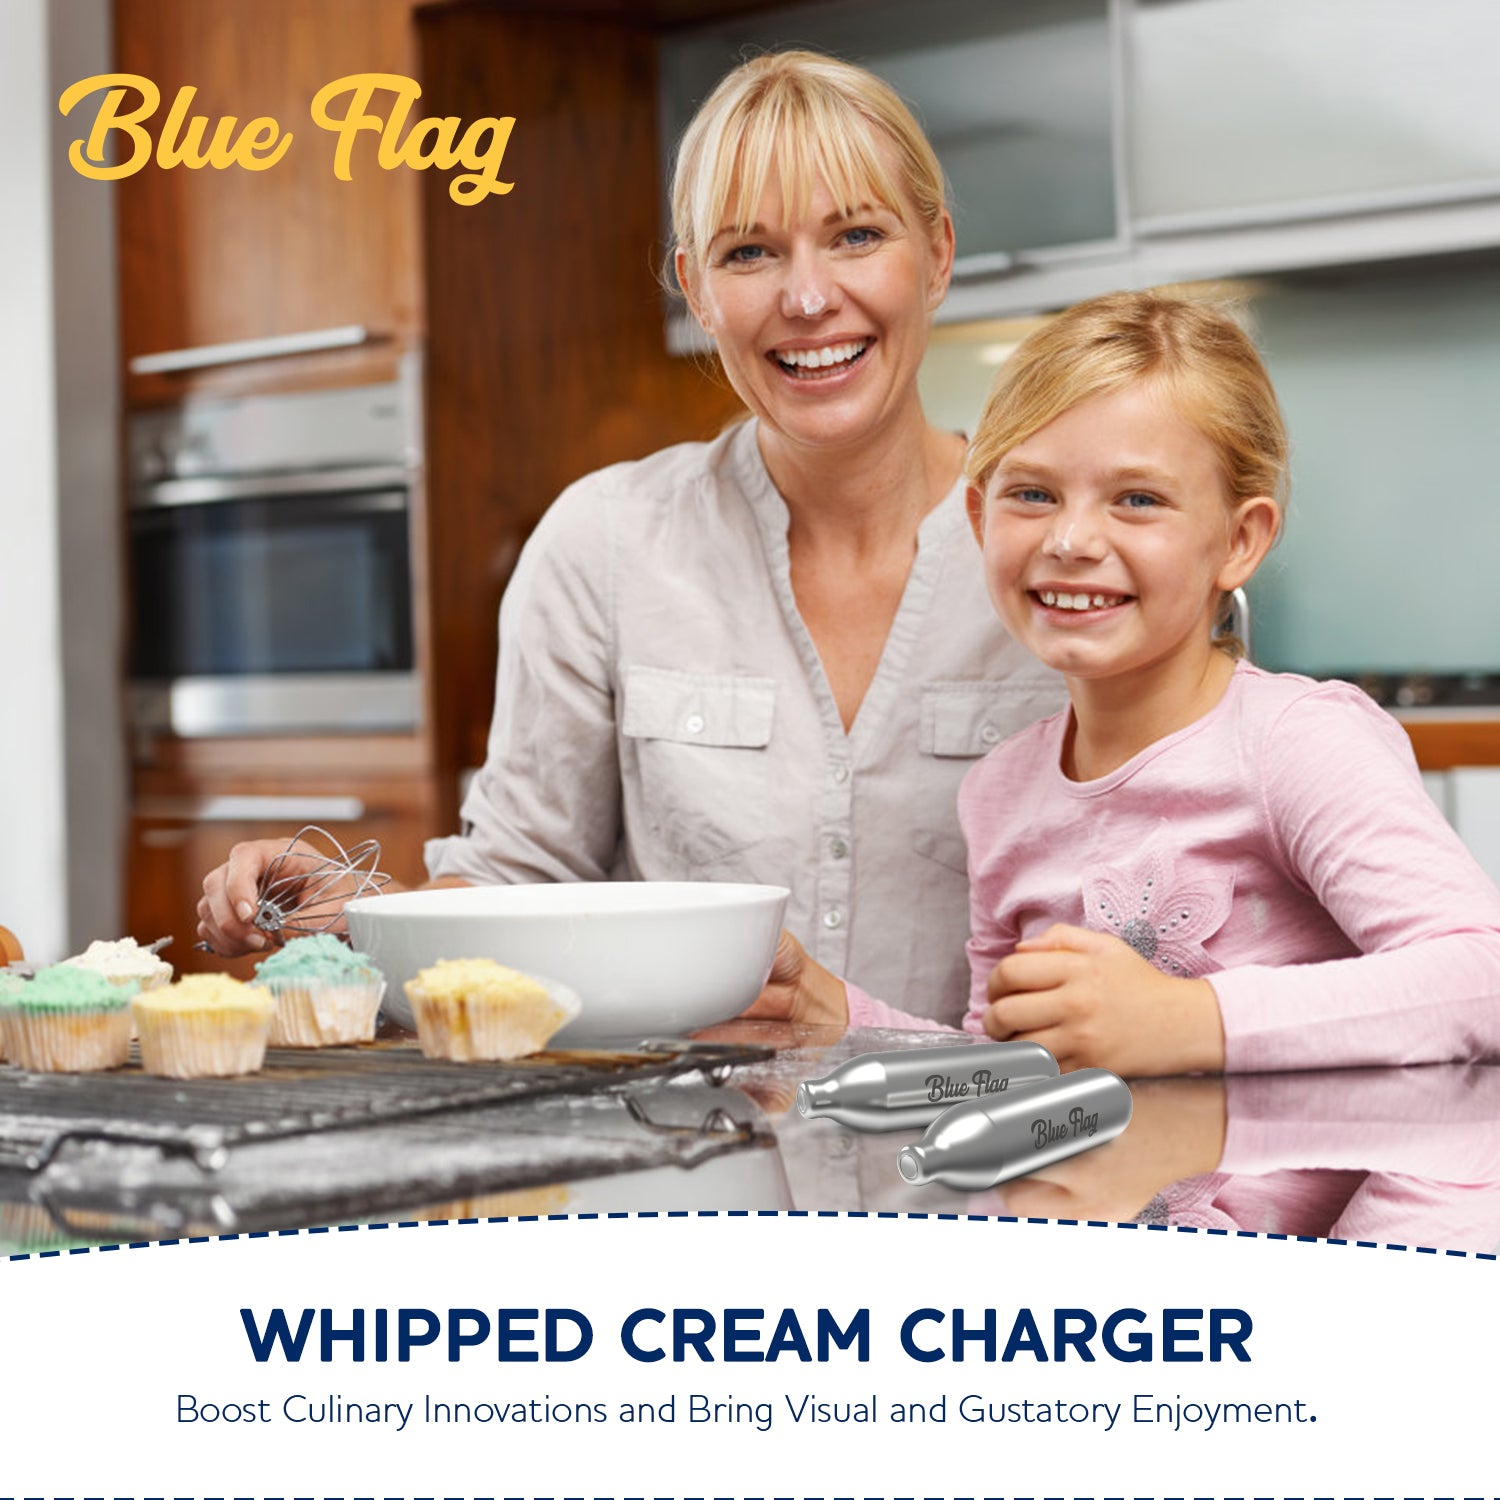 BlueFlag 8g N2O Whipped Cream Chargers 120 Packs